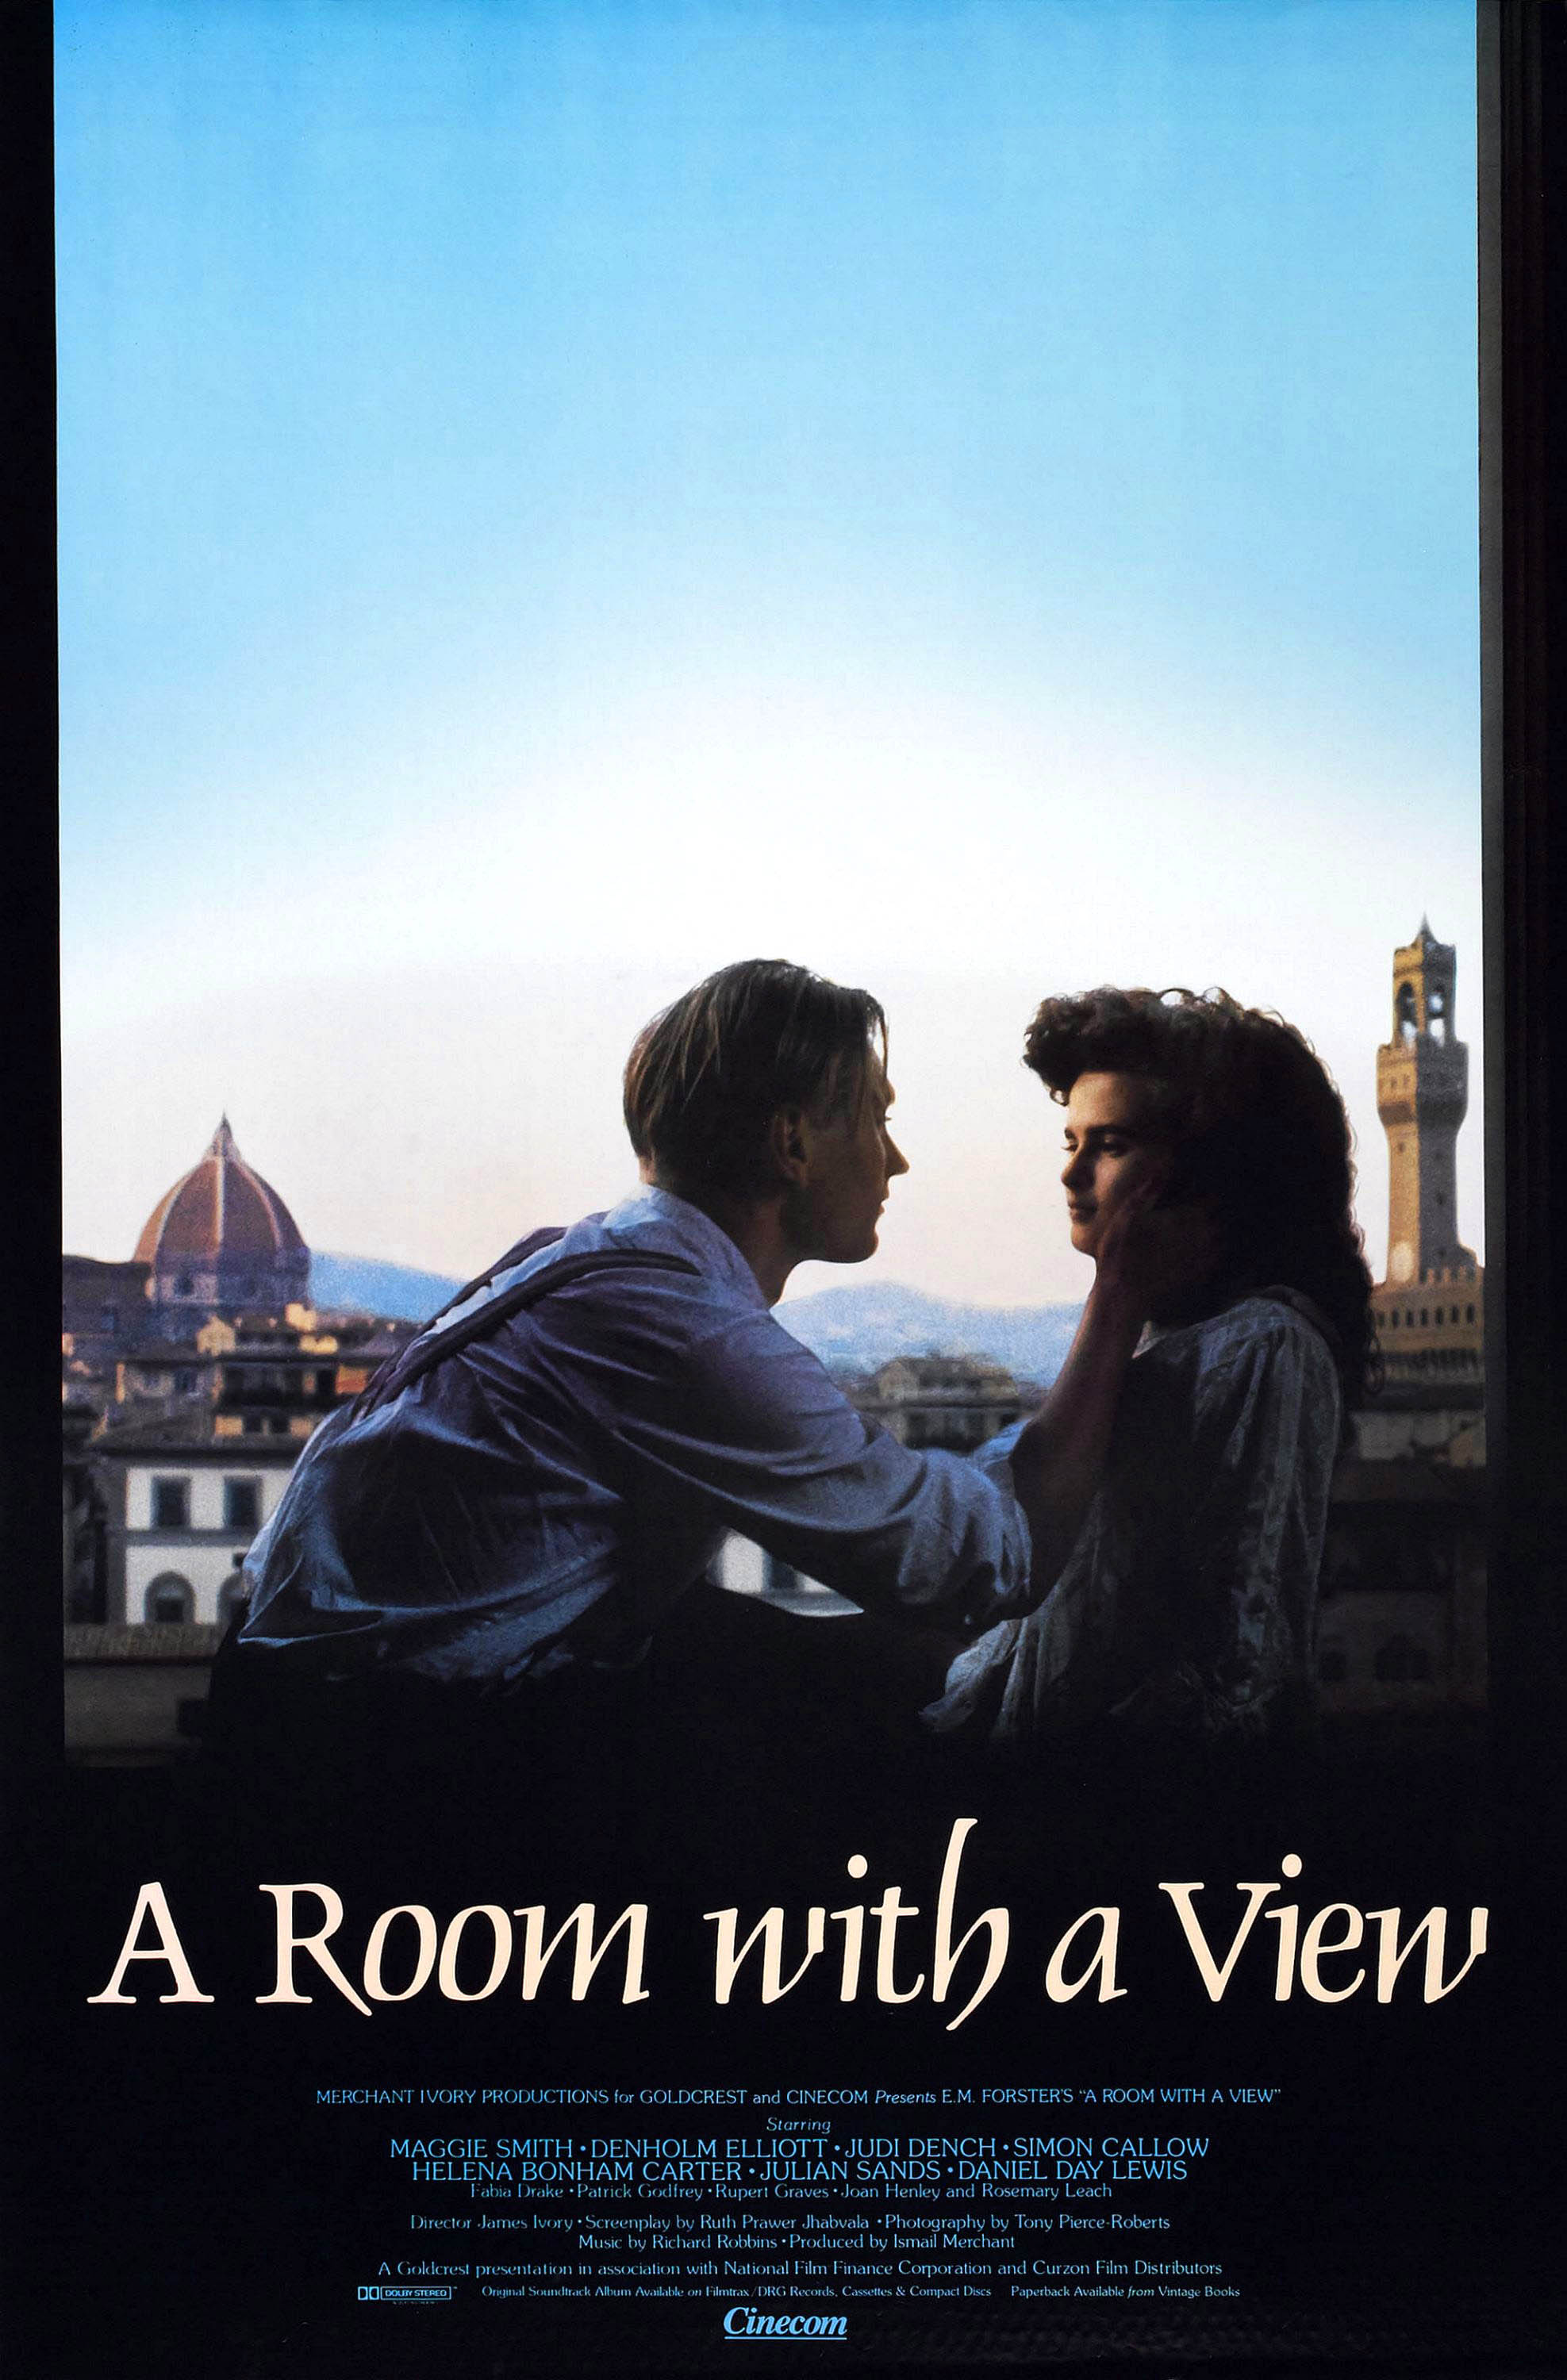 chambre avec vue de james ivory 1985 analyse et critique du film dvdclassik. Black Bedroom Furniture Sets. Home Design Ideas